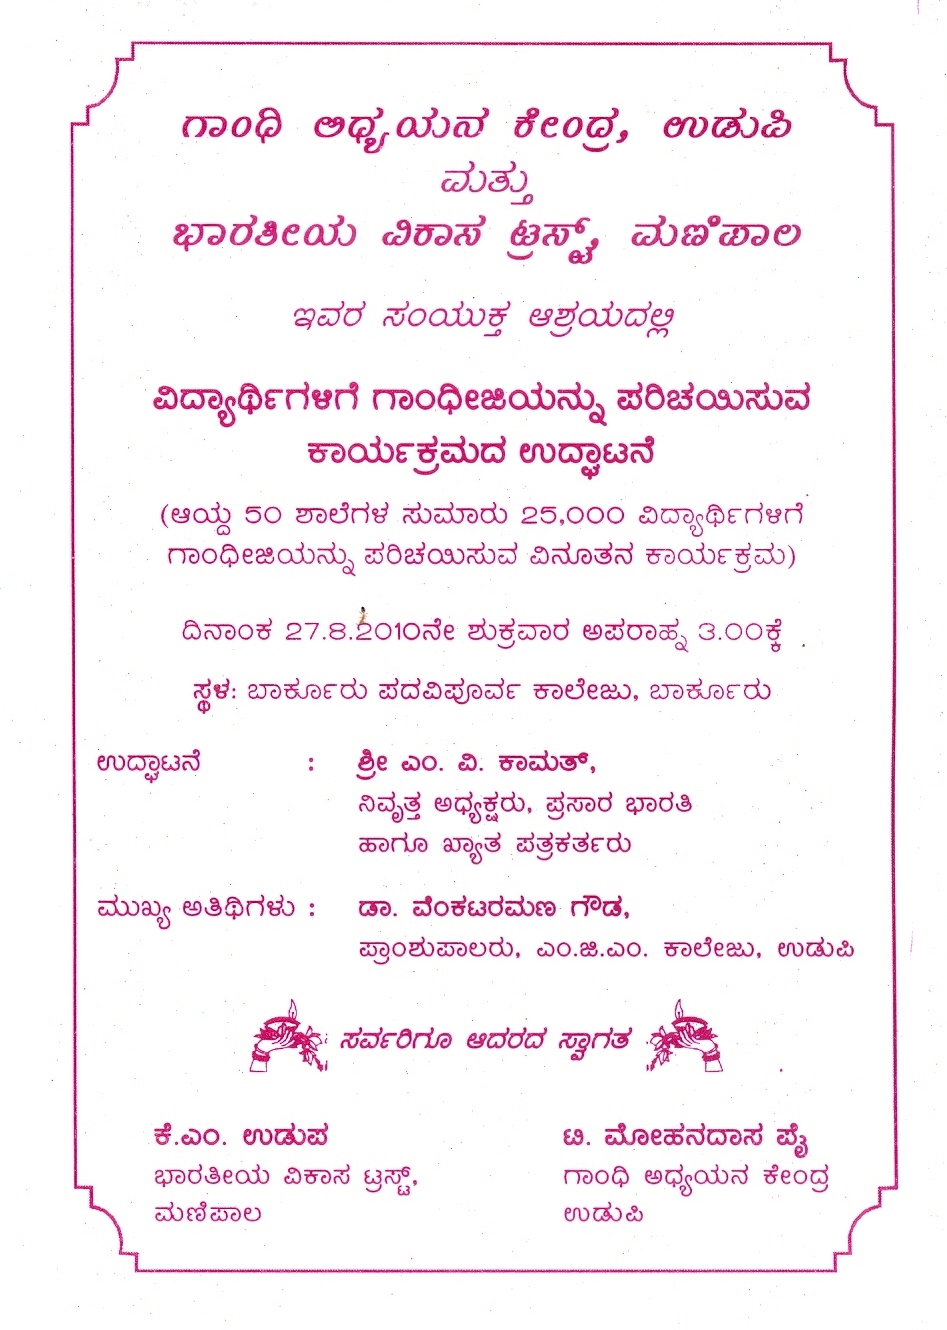 cordially invited template cordially invited template you are all cordially invited template all are cordially invited